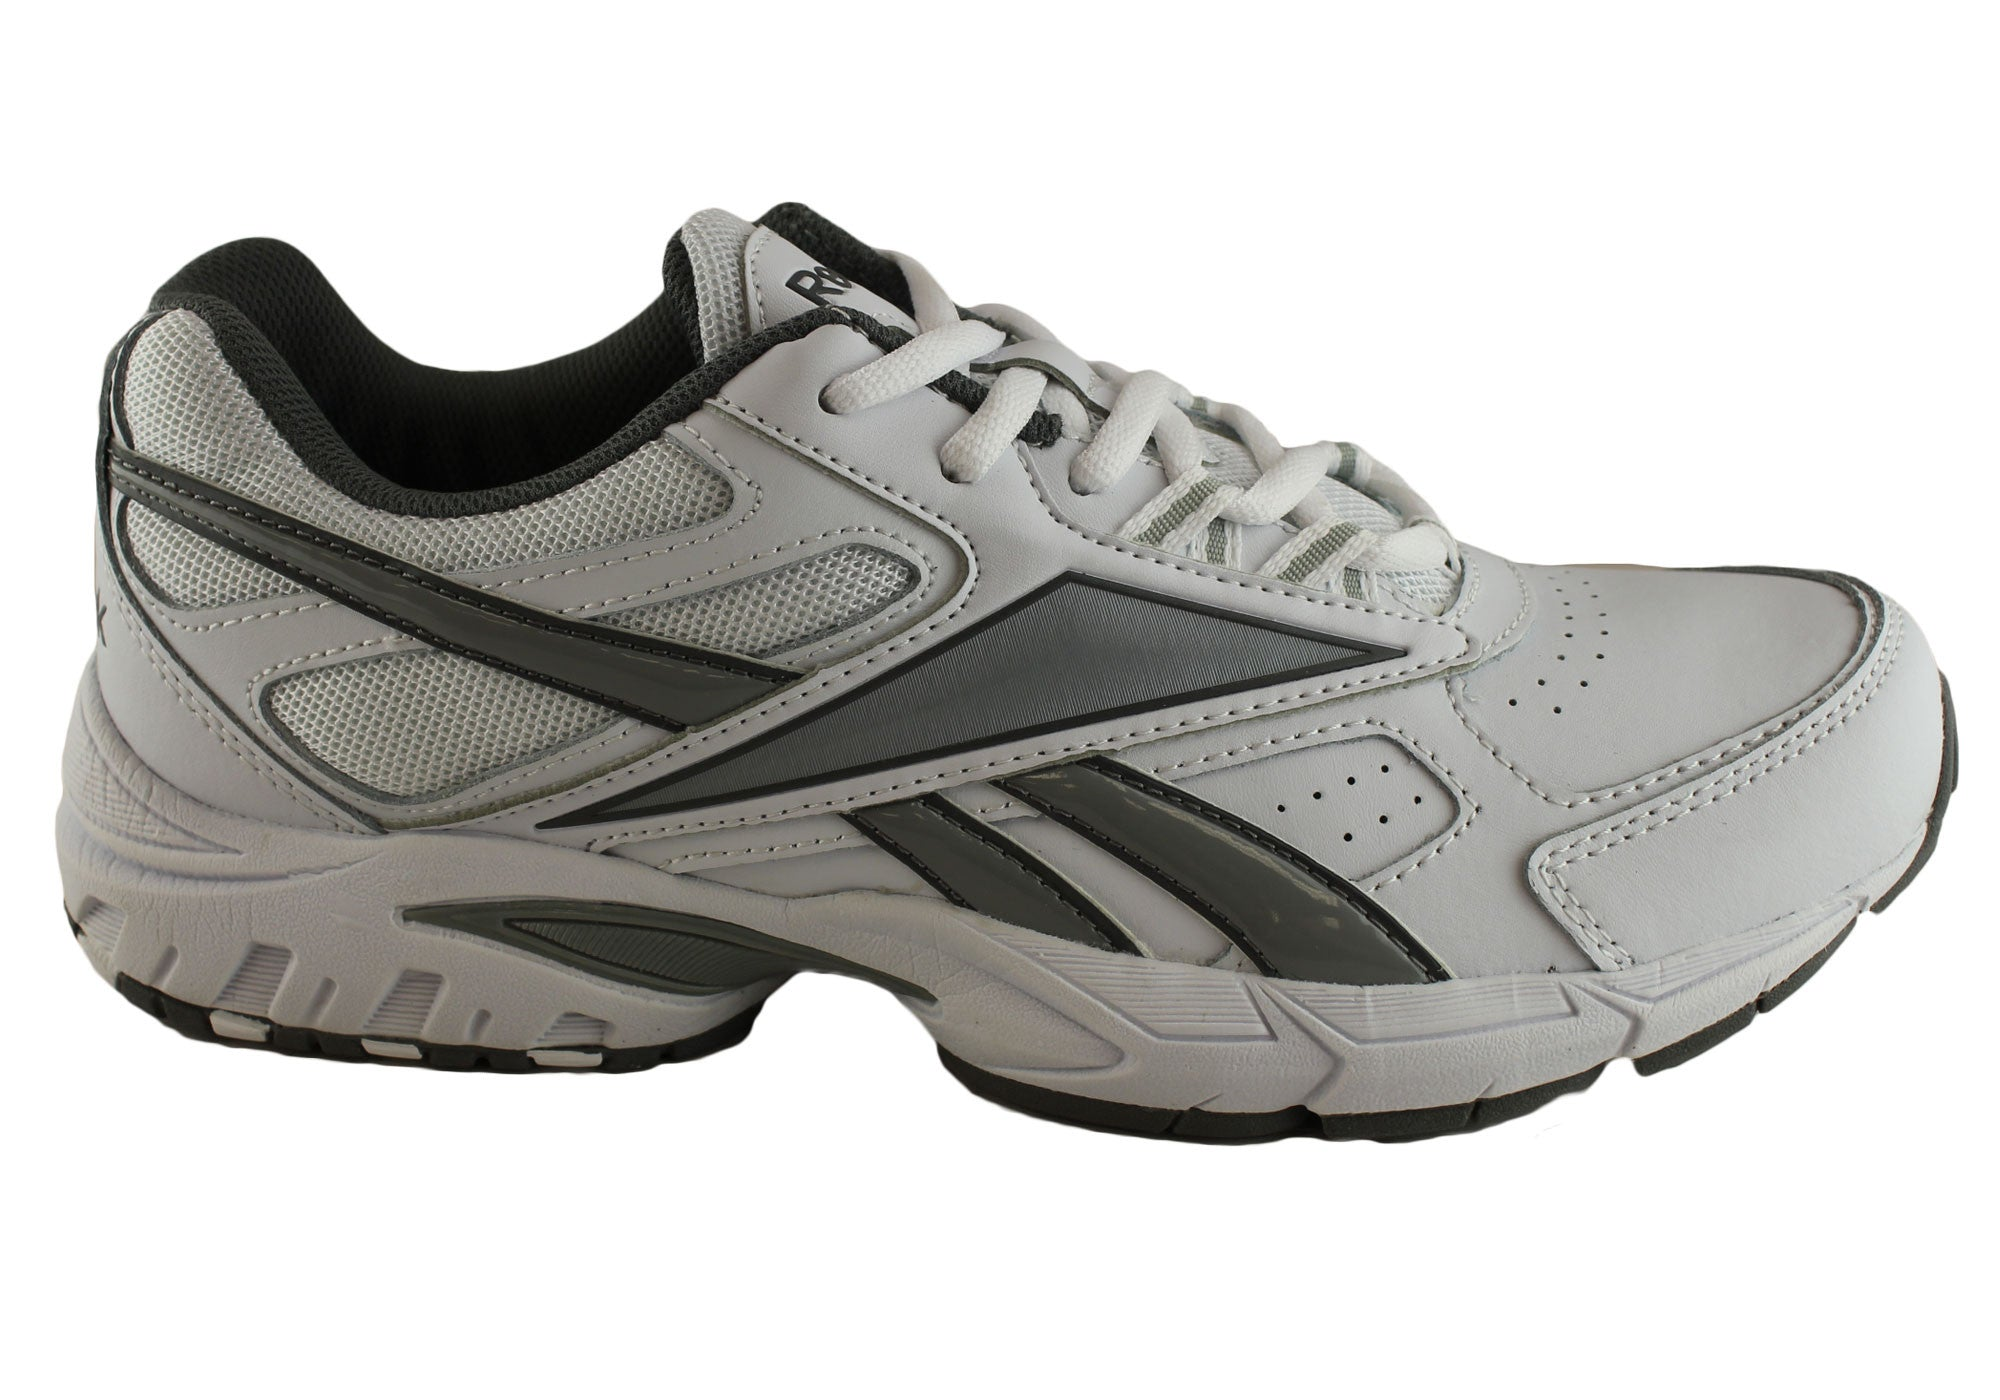 Reebok Infrastructure Trainer Mens Leather RunningWalking Shoes